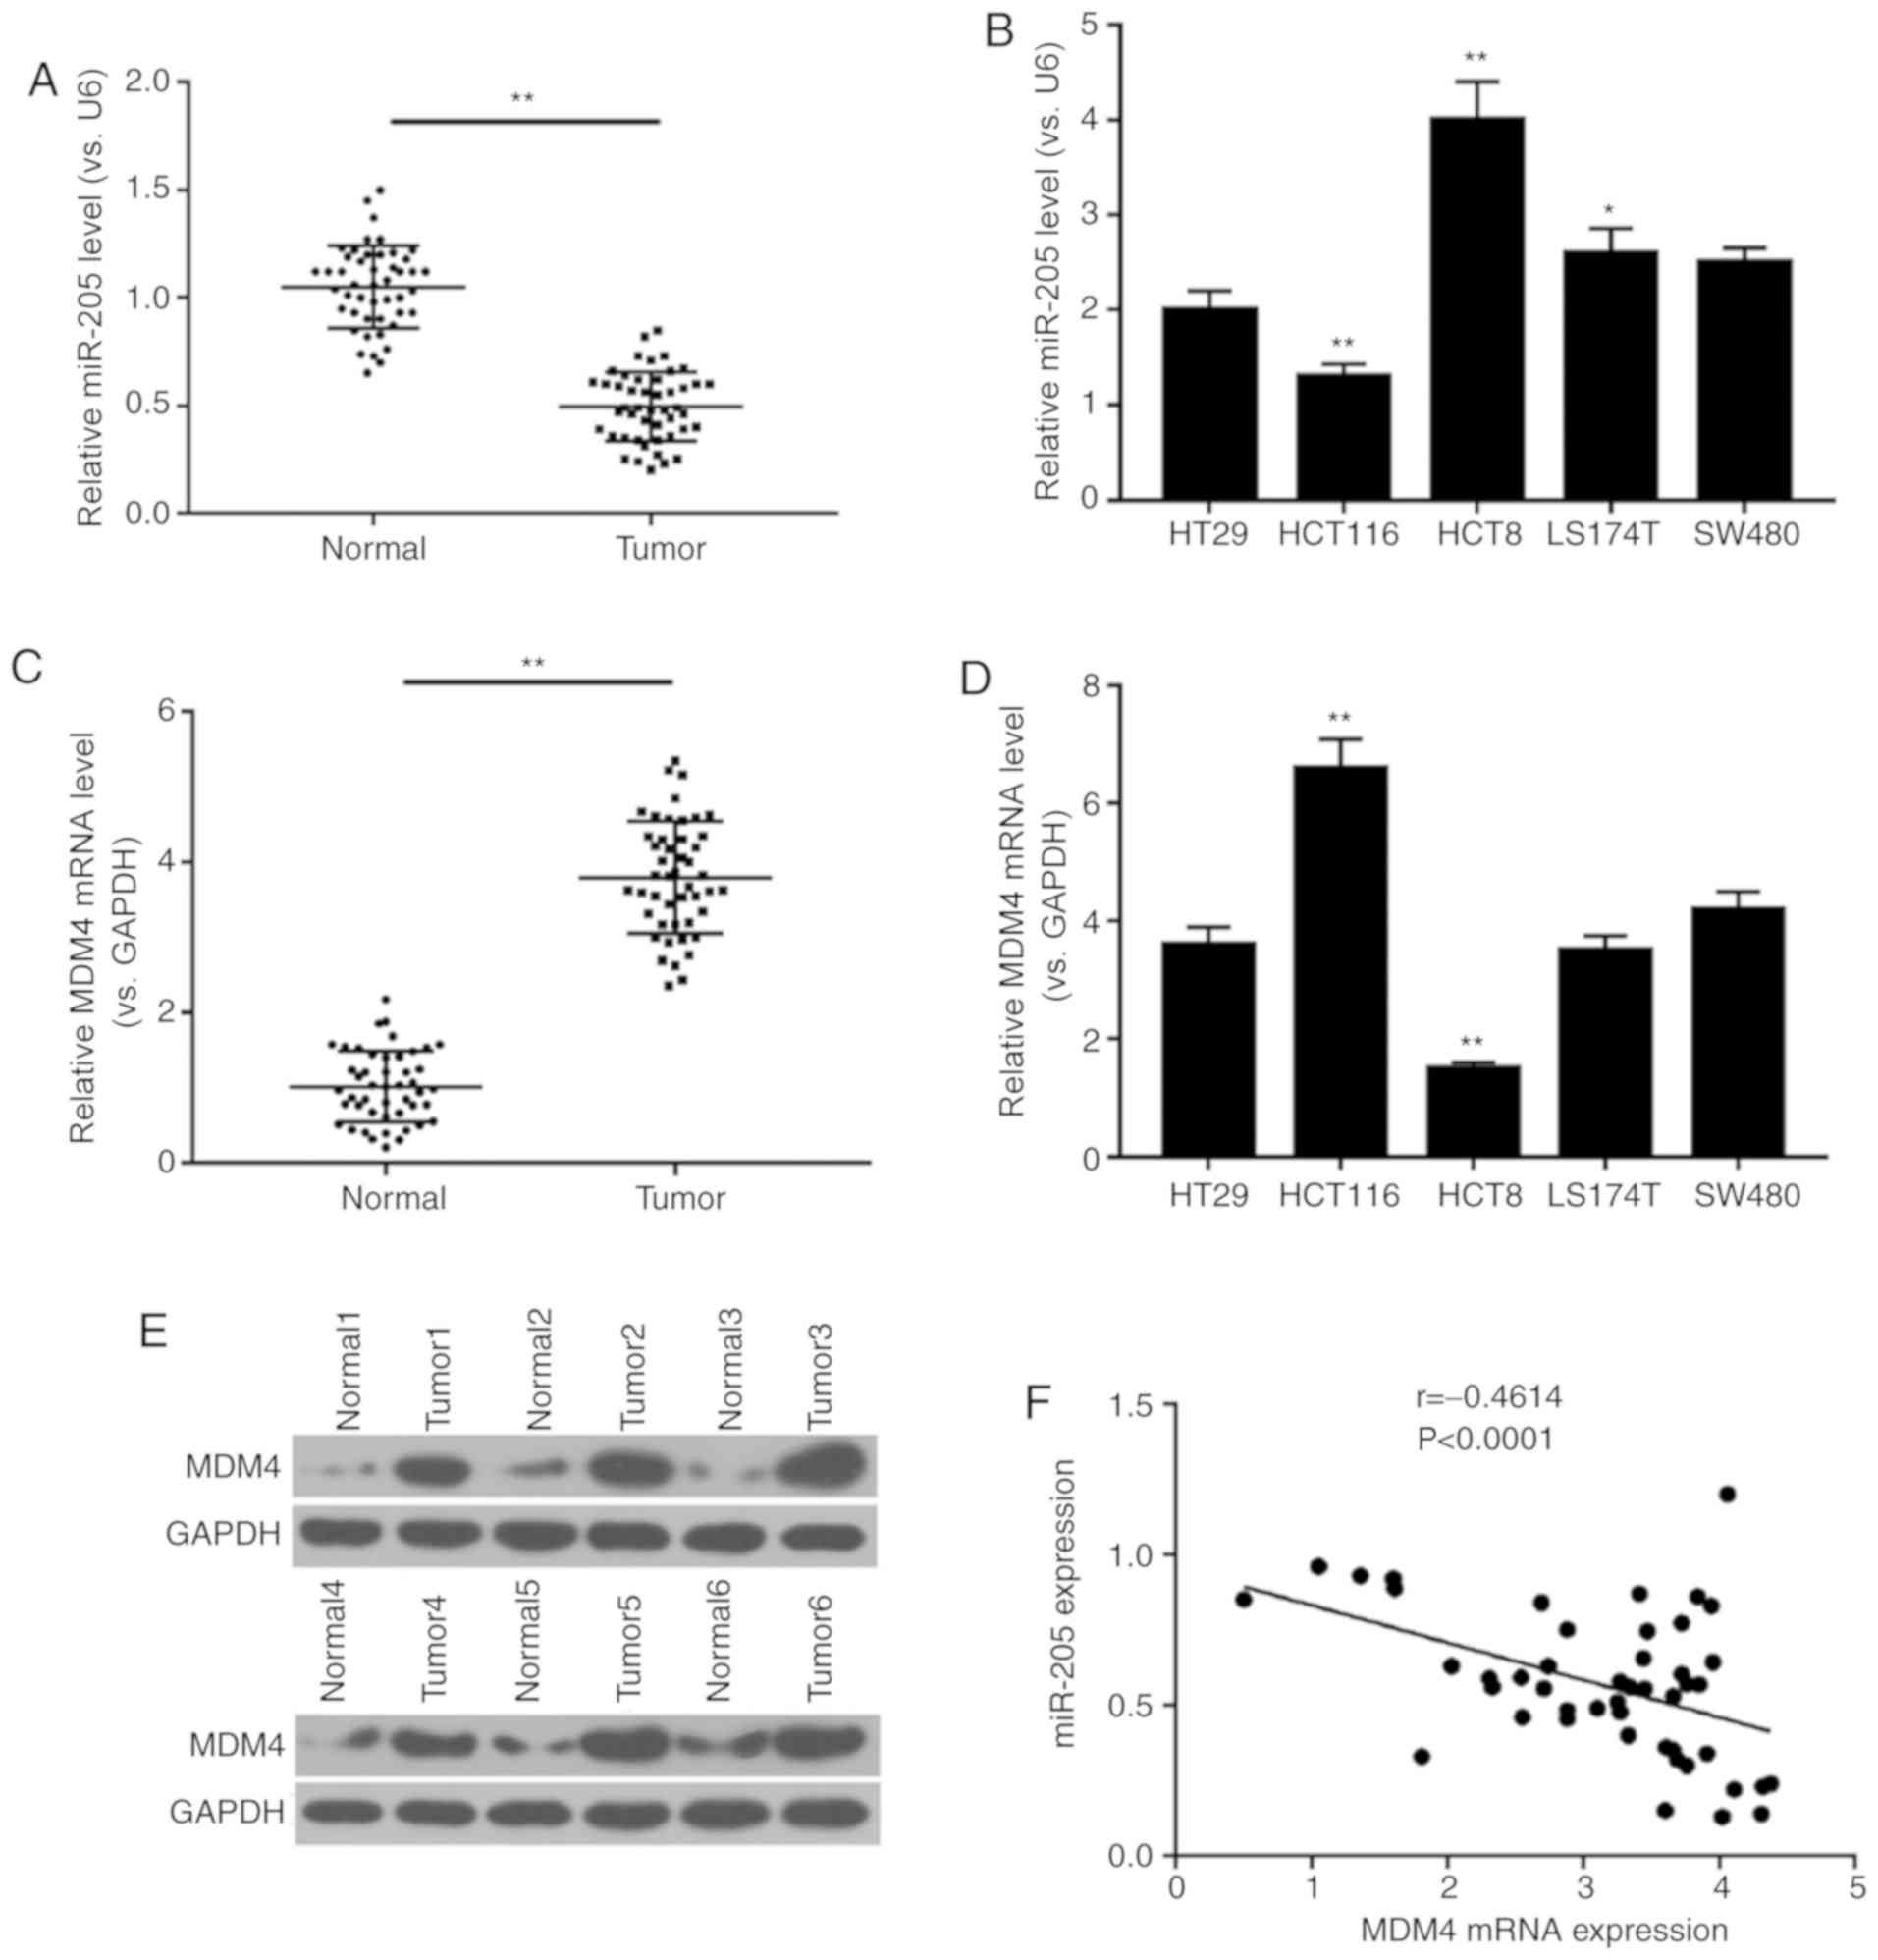 Mir 205 Suppresses Cell Migration Invasion And Emt Of Colon Cancer By Targeting Mouse Double Minute 4